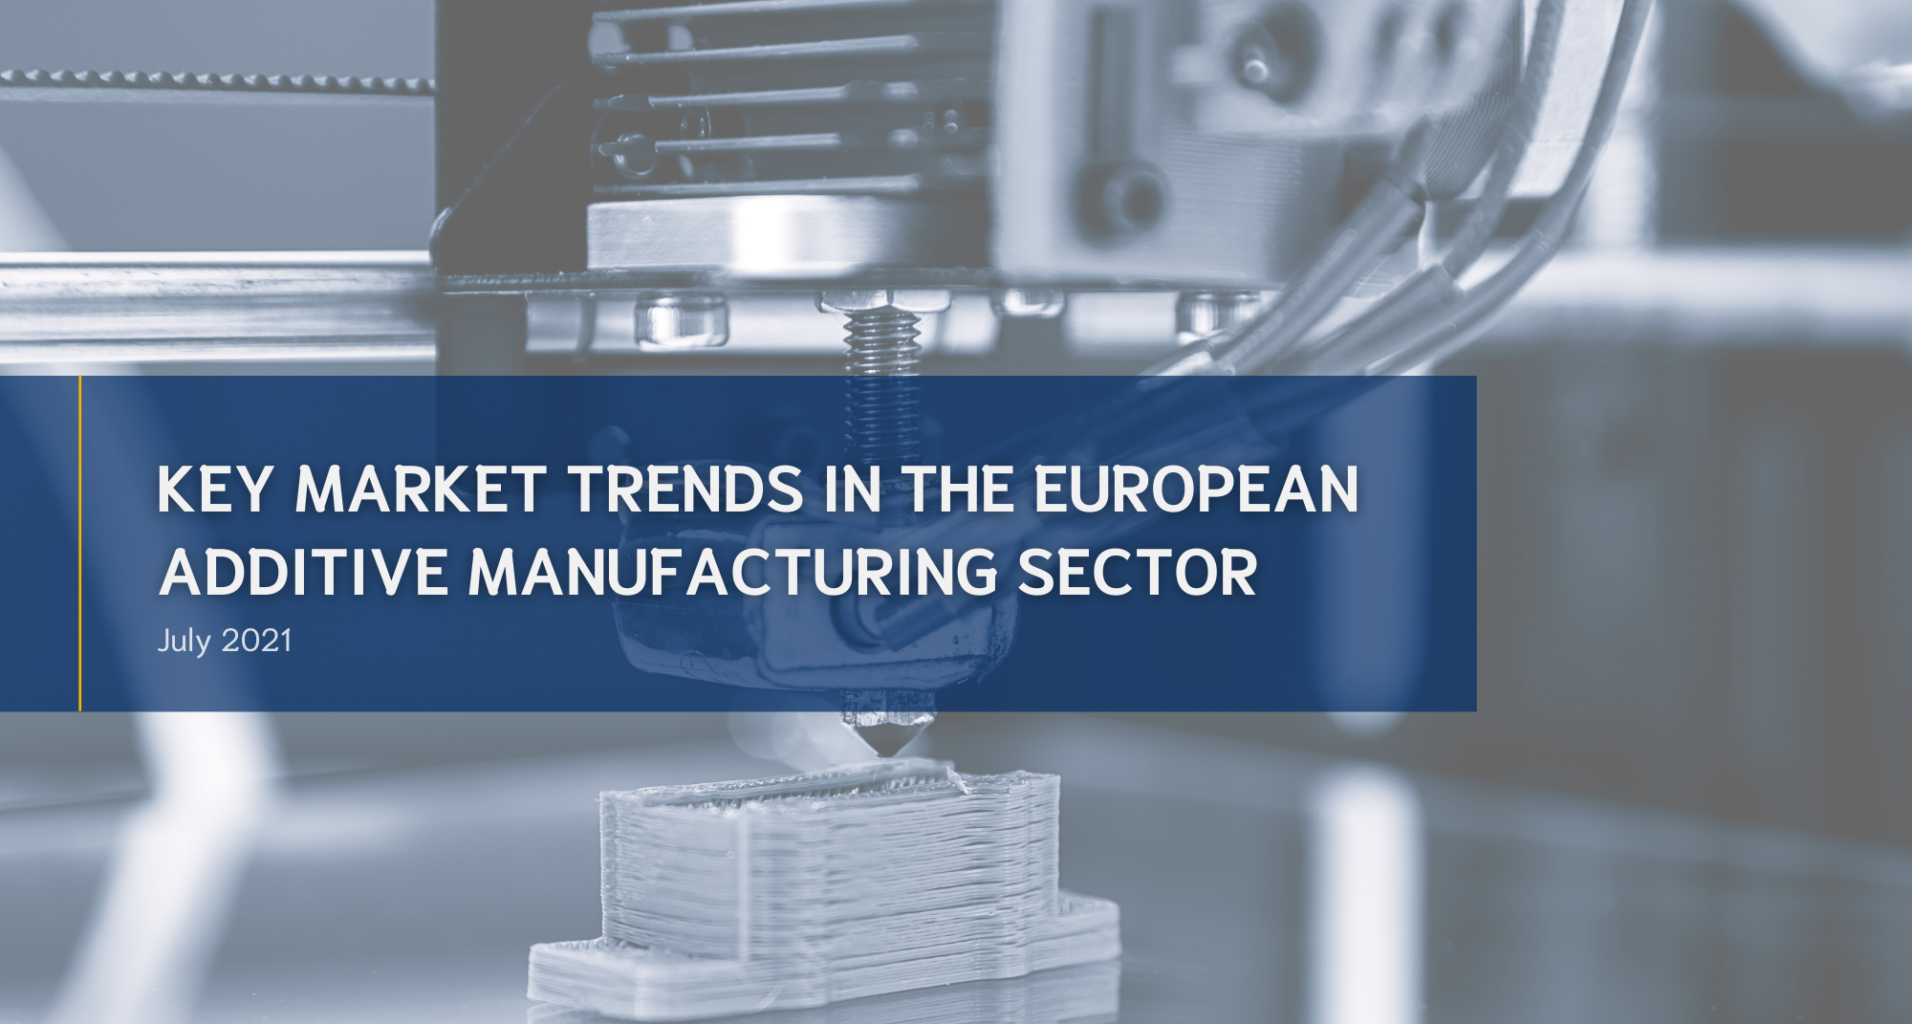 Key Market Trends in the European Additive Manufacturing Sector